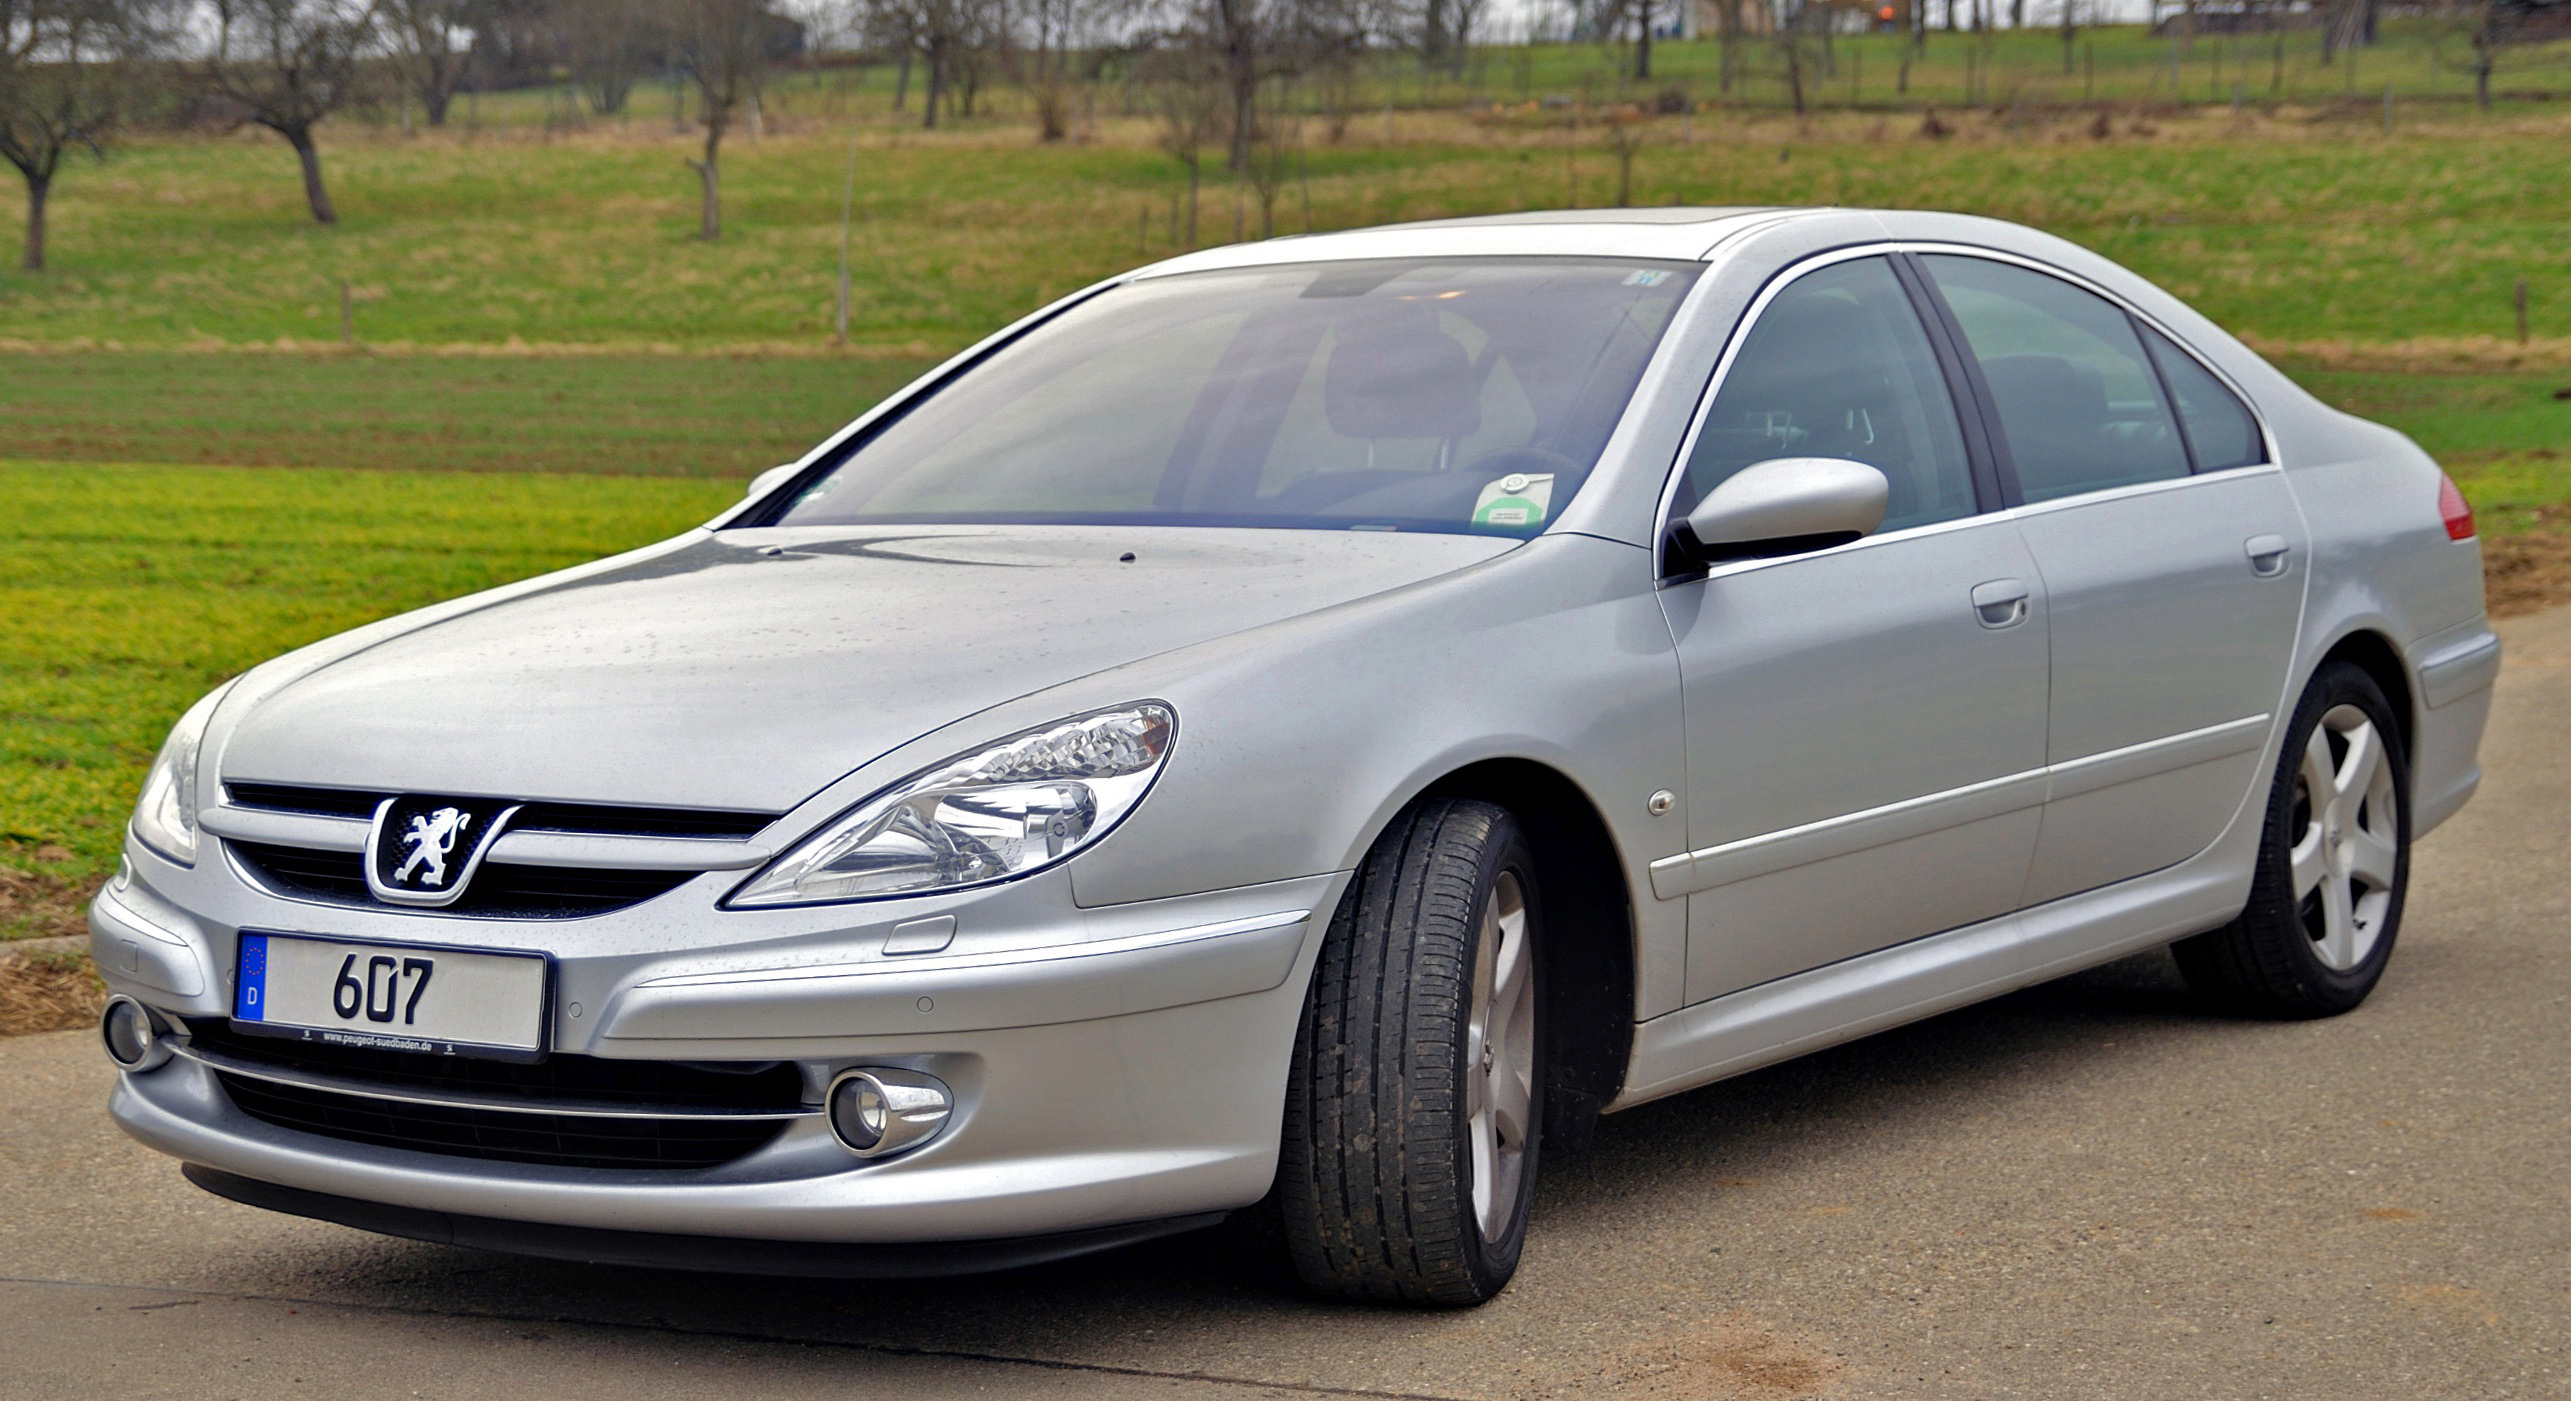 File:Peugeot 607 - 2.7 HDI Facelift.jpg - Wikimedia Commons